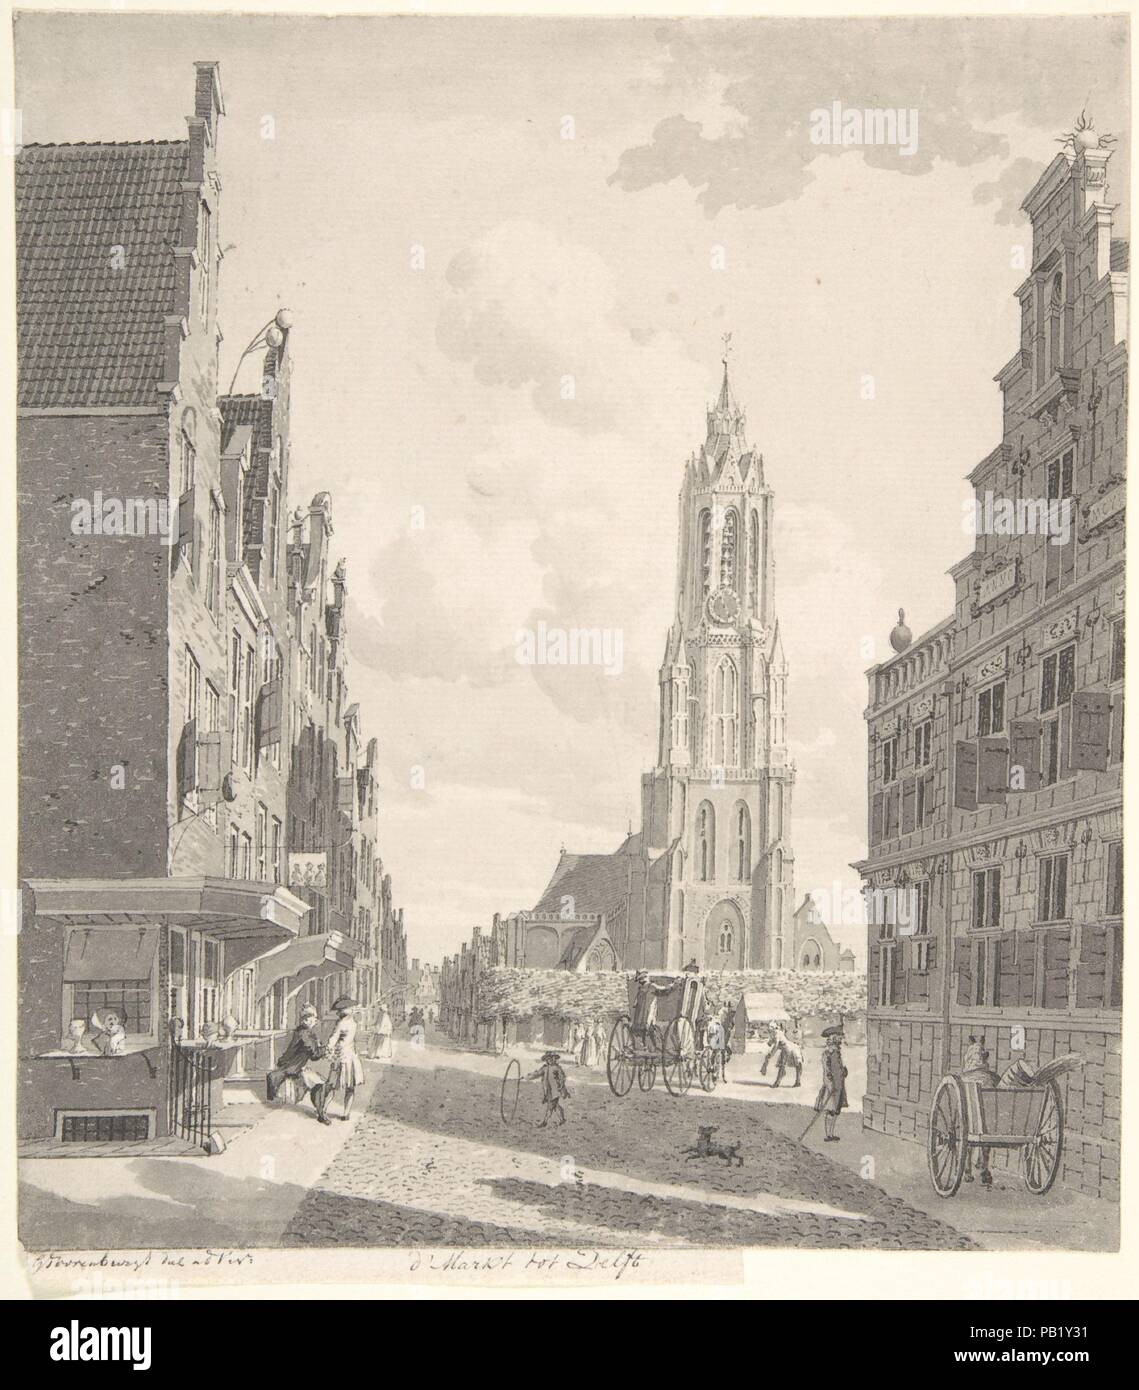 Marketplace of Delft with the Nieuwekerk. Artist: Gerrit Toorenburgh (Dutch, Amsterdam 1732-1785 Nijerk). Dimensions: sheet: 8 3/8 x 7 7/16 in. (21.3 x 18.9 cm). Date: 18th century. Museum: Metropolitan Museum of Art, New York, USA. Stock Photo